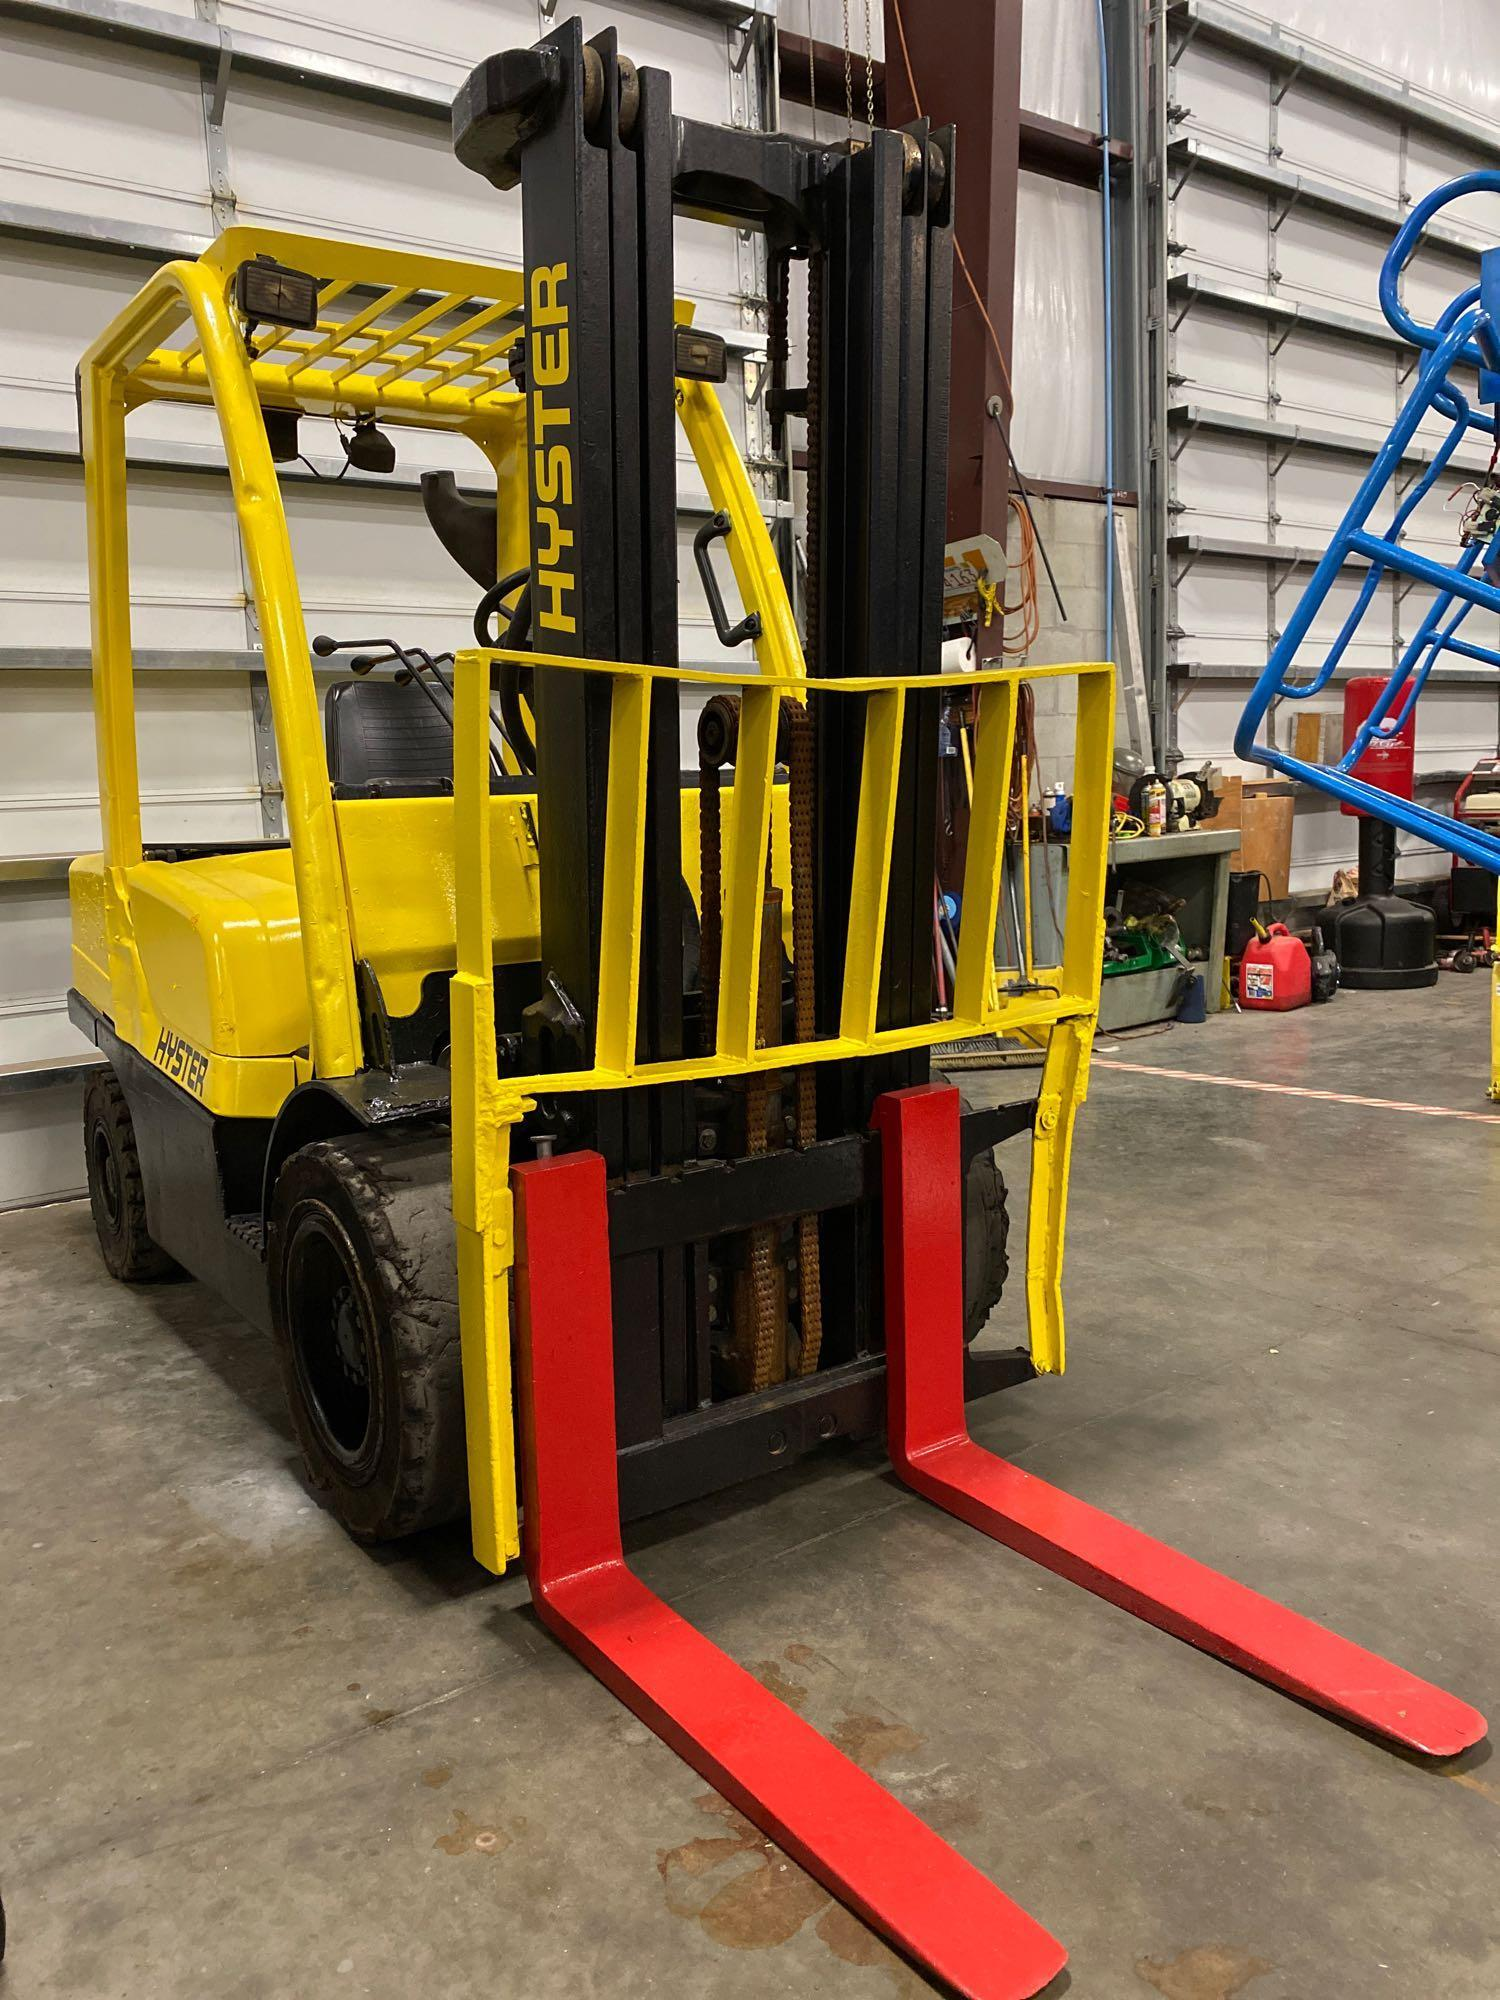 """HYSTER H70FT FORKLIFT, APPROX. 7,000 LB CAPACITY, 181.9"""" HEIGHT CAP, TILT, RUNS AND OPERATES - Image 5 of 10"""